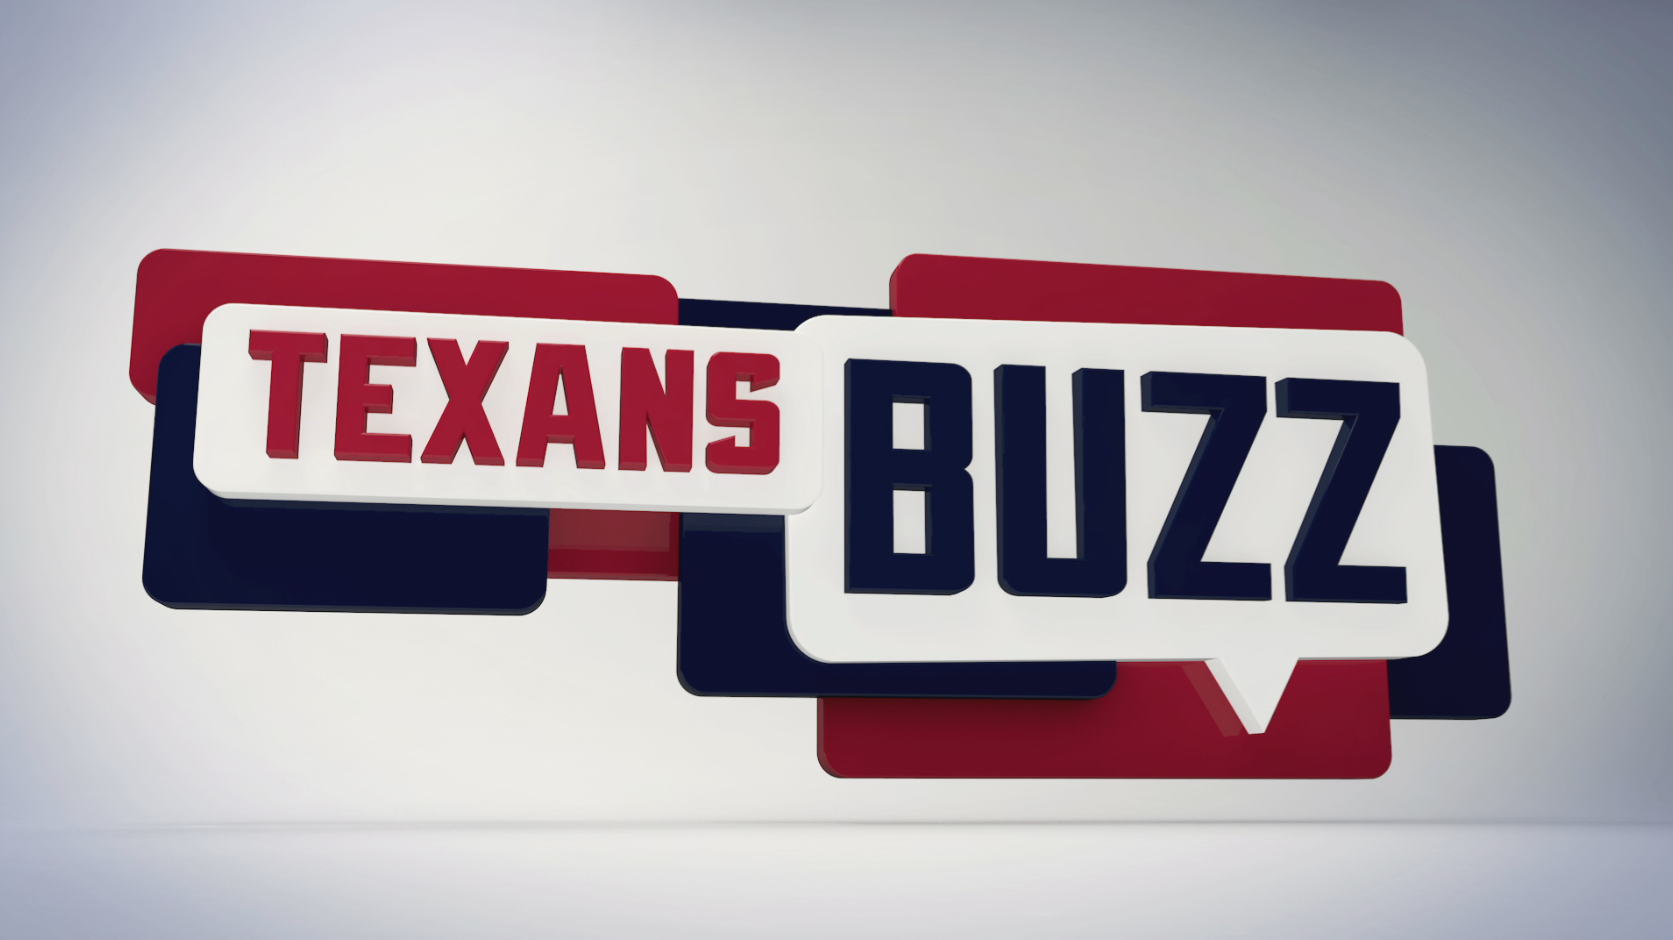 Texans Buzz: Saturdays at 11 PM